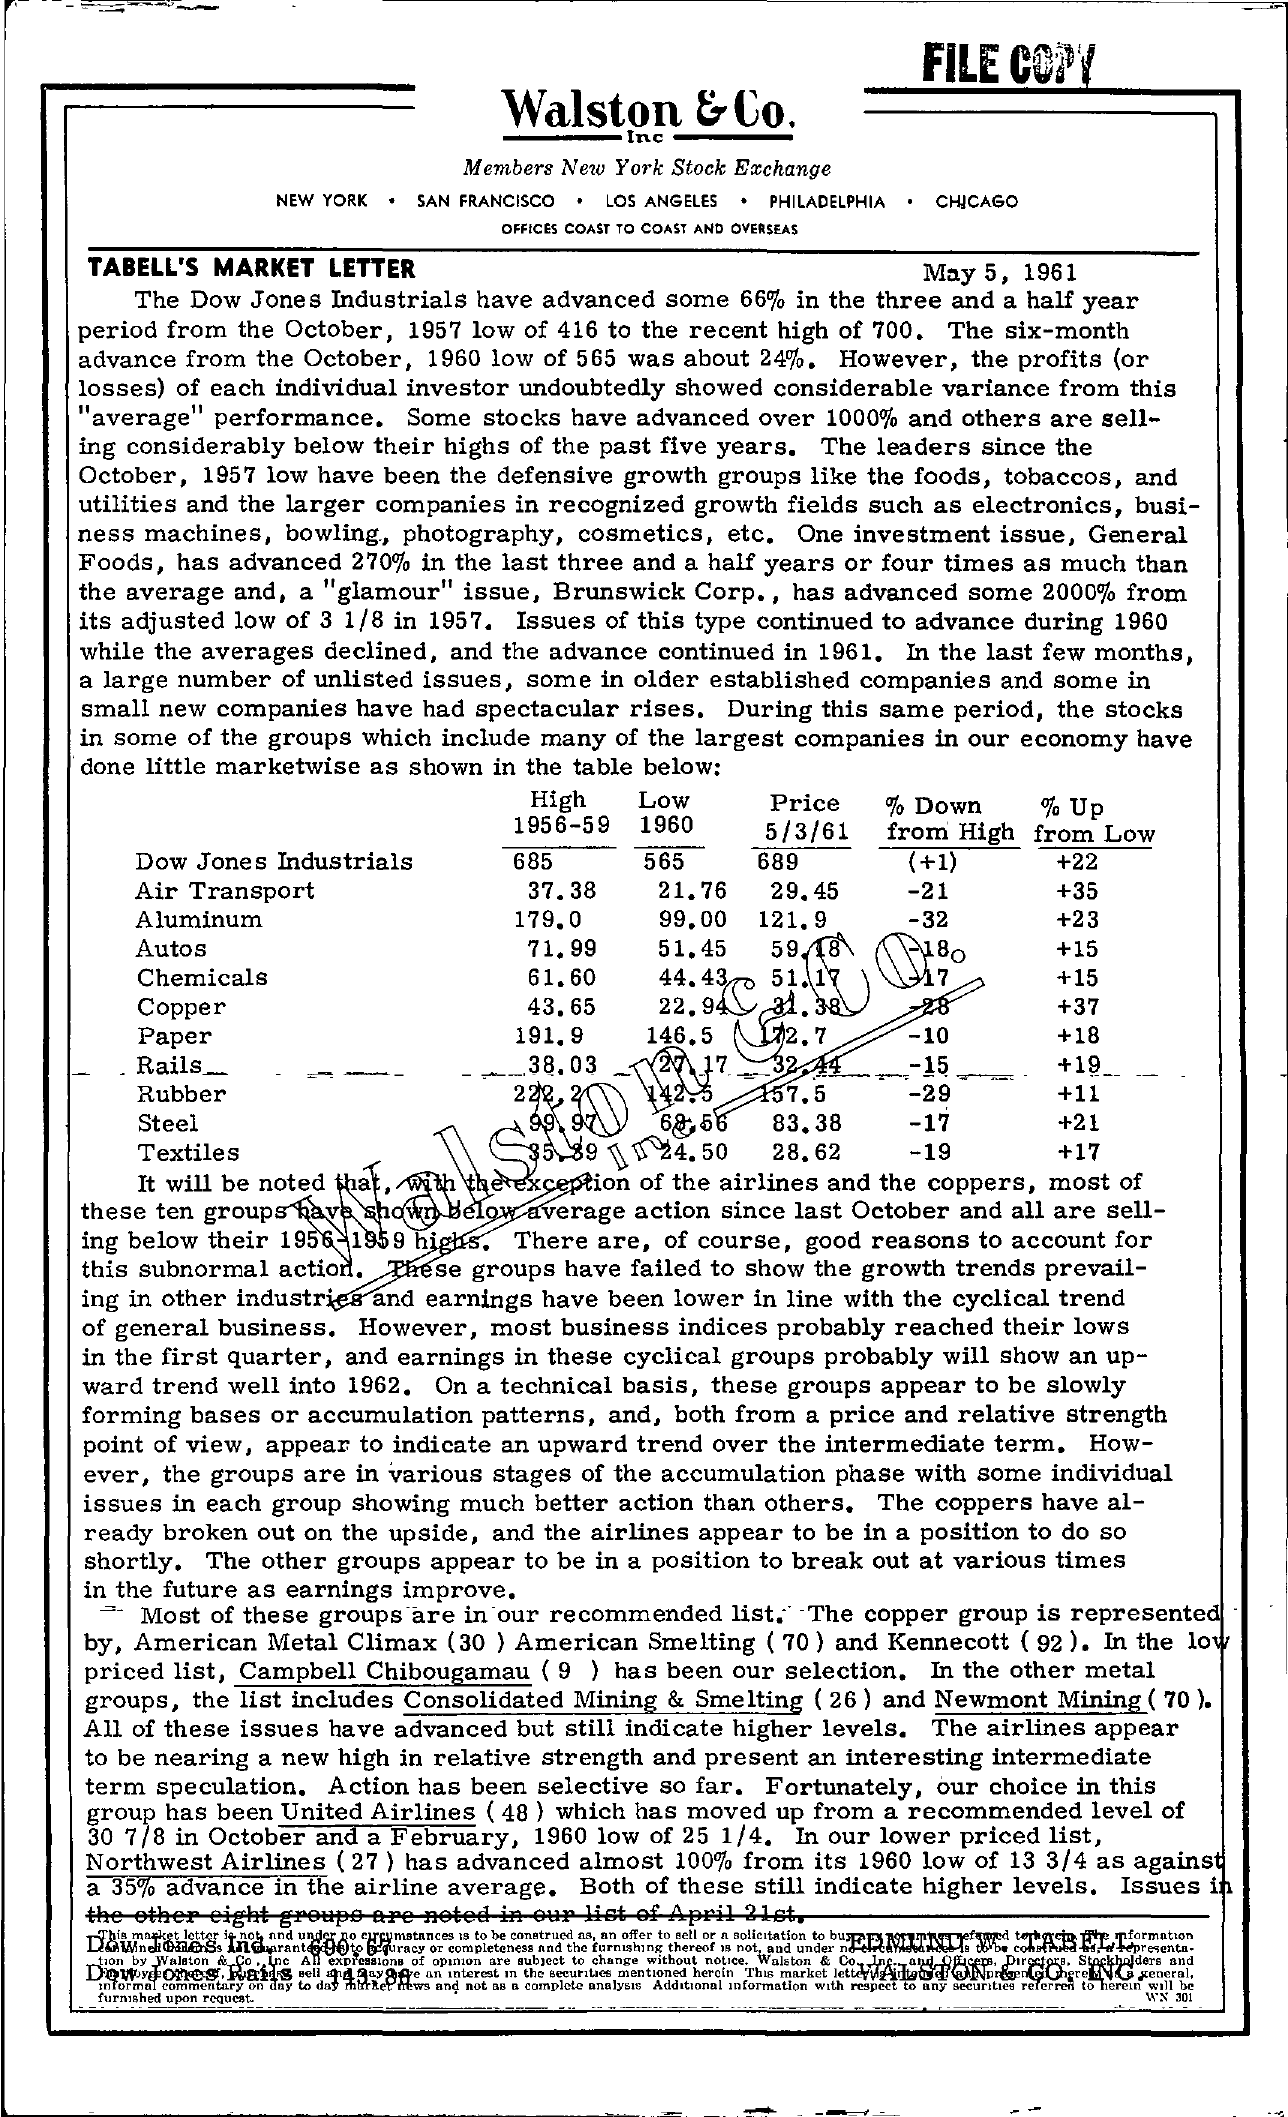 Tabell's Market Letter - May 05, 1961